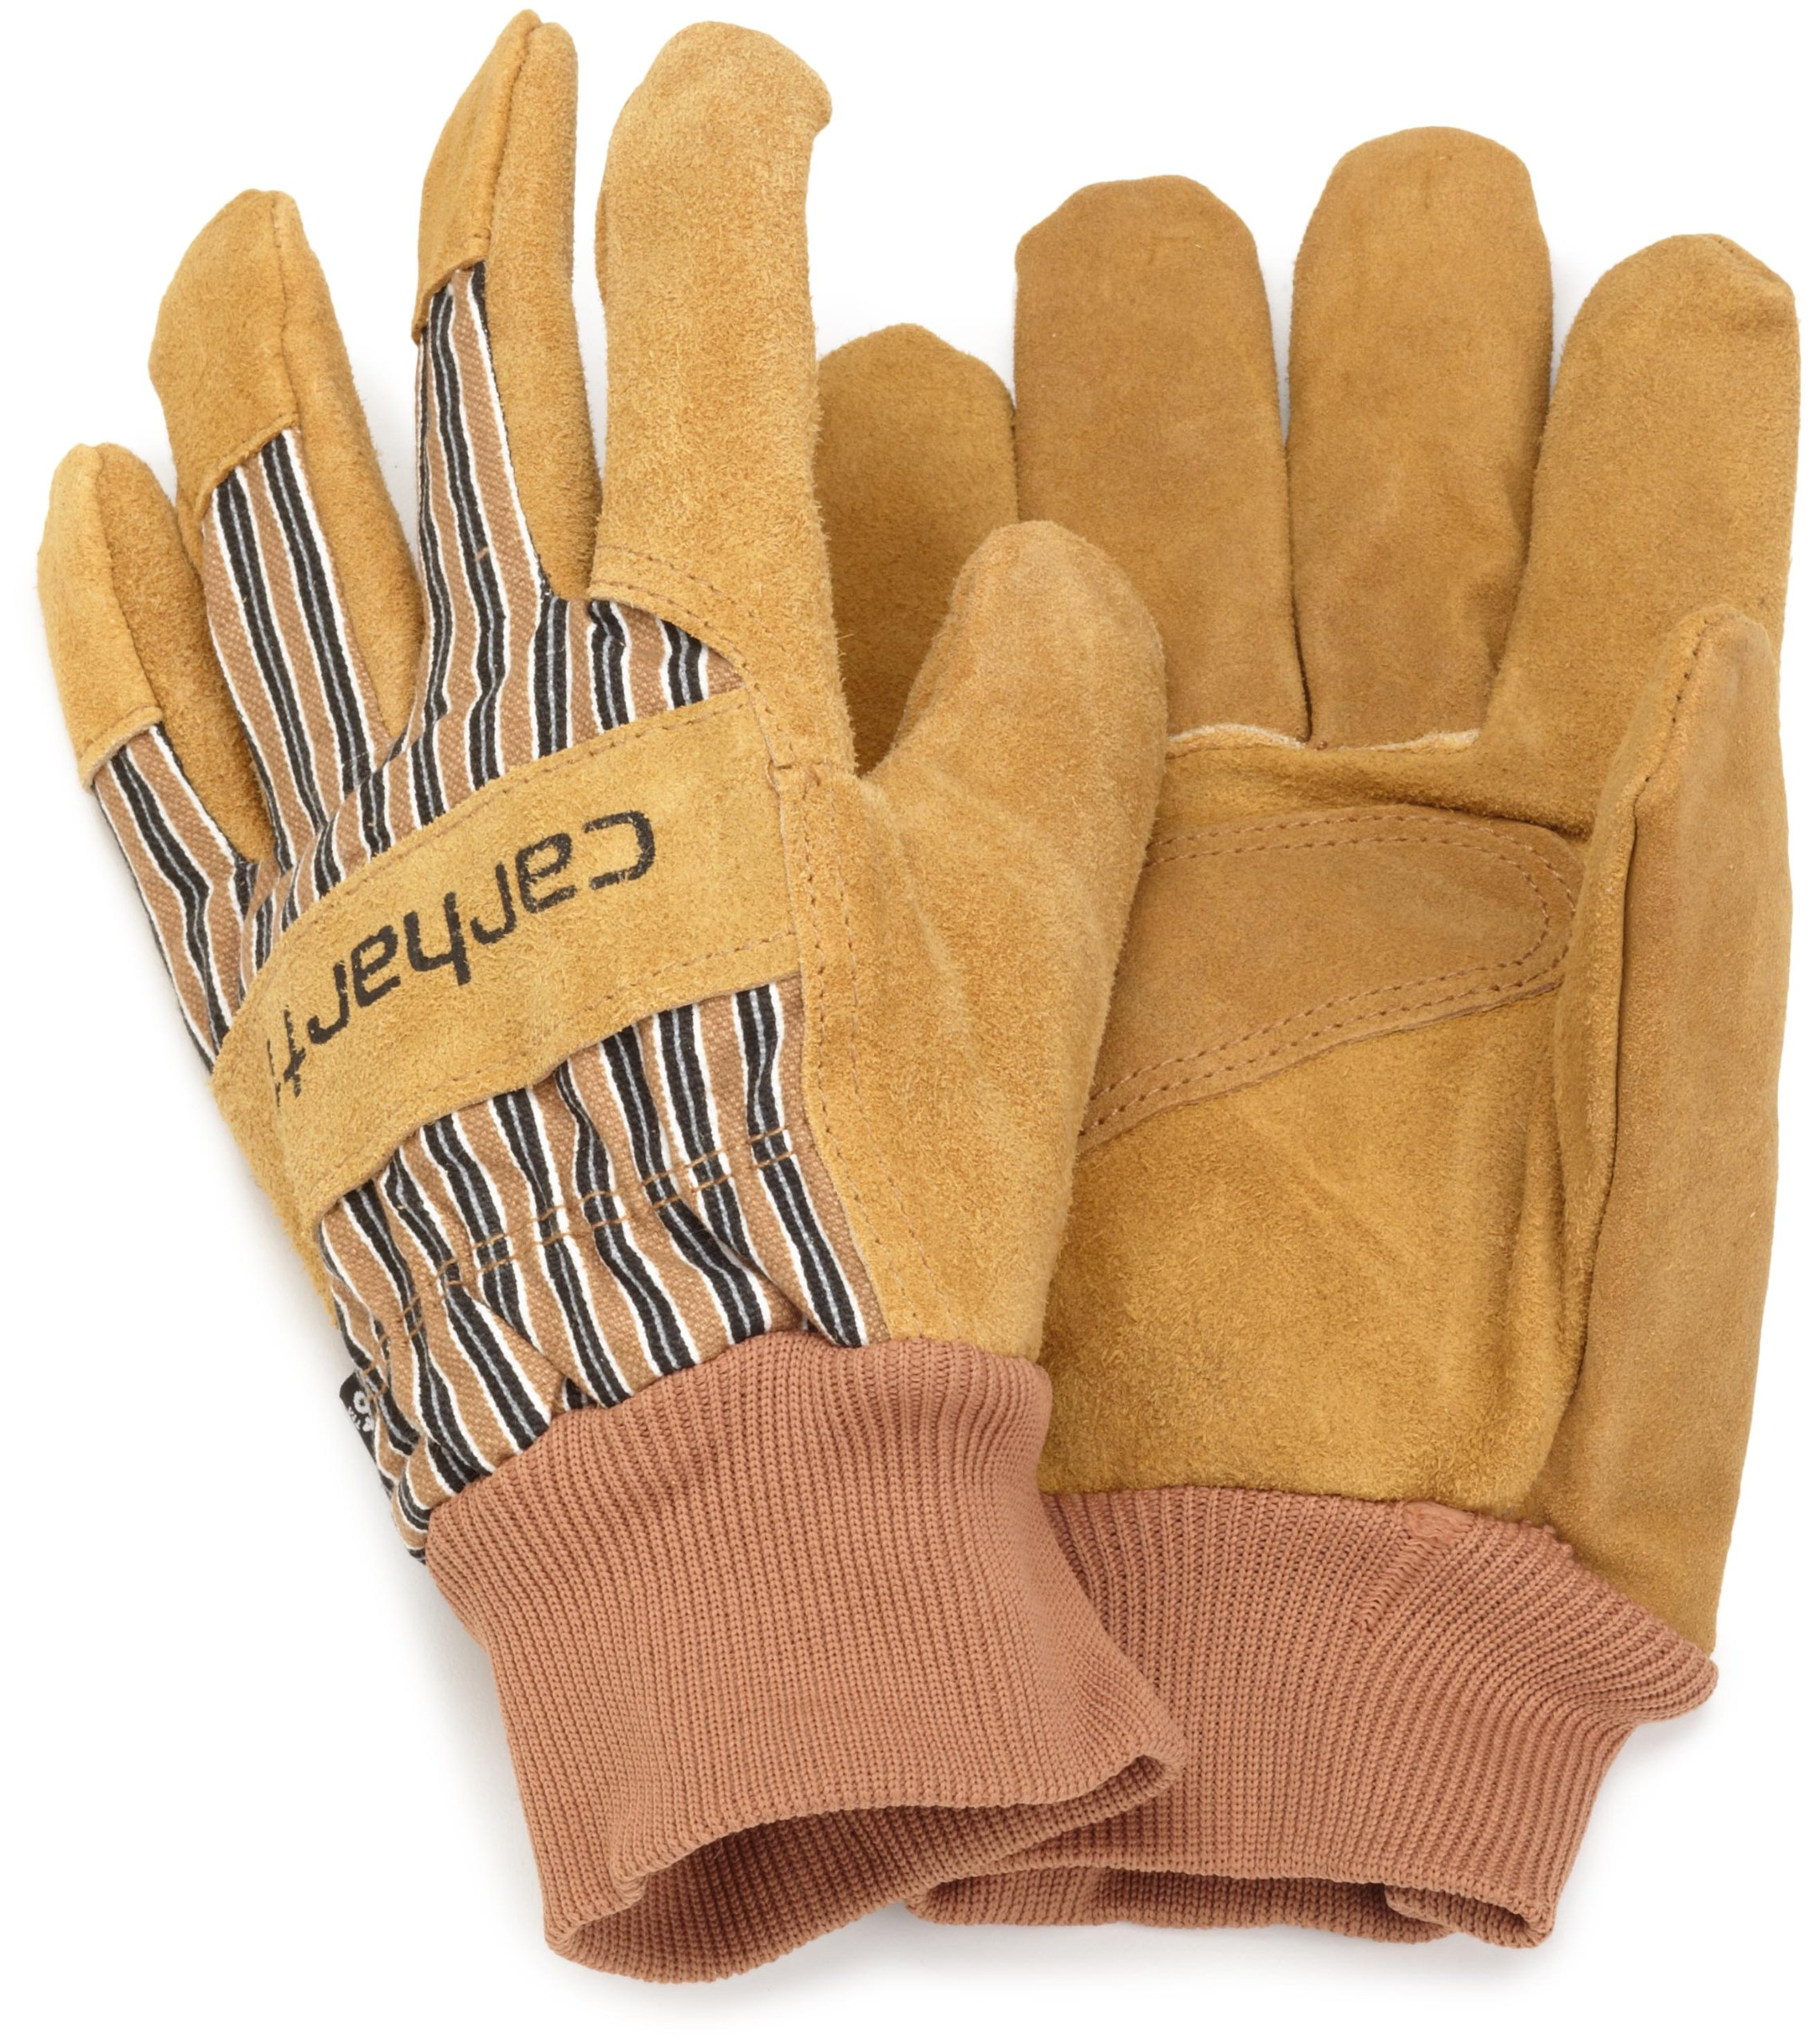 Carhartt Men's Insulated Suede Work Glove with Knit Cuff, Brown, X-Large